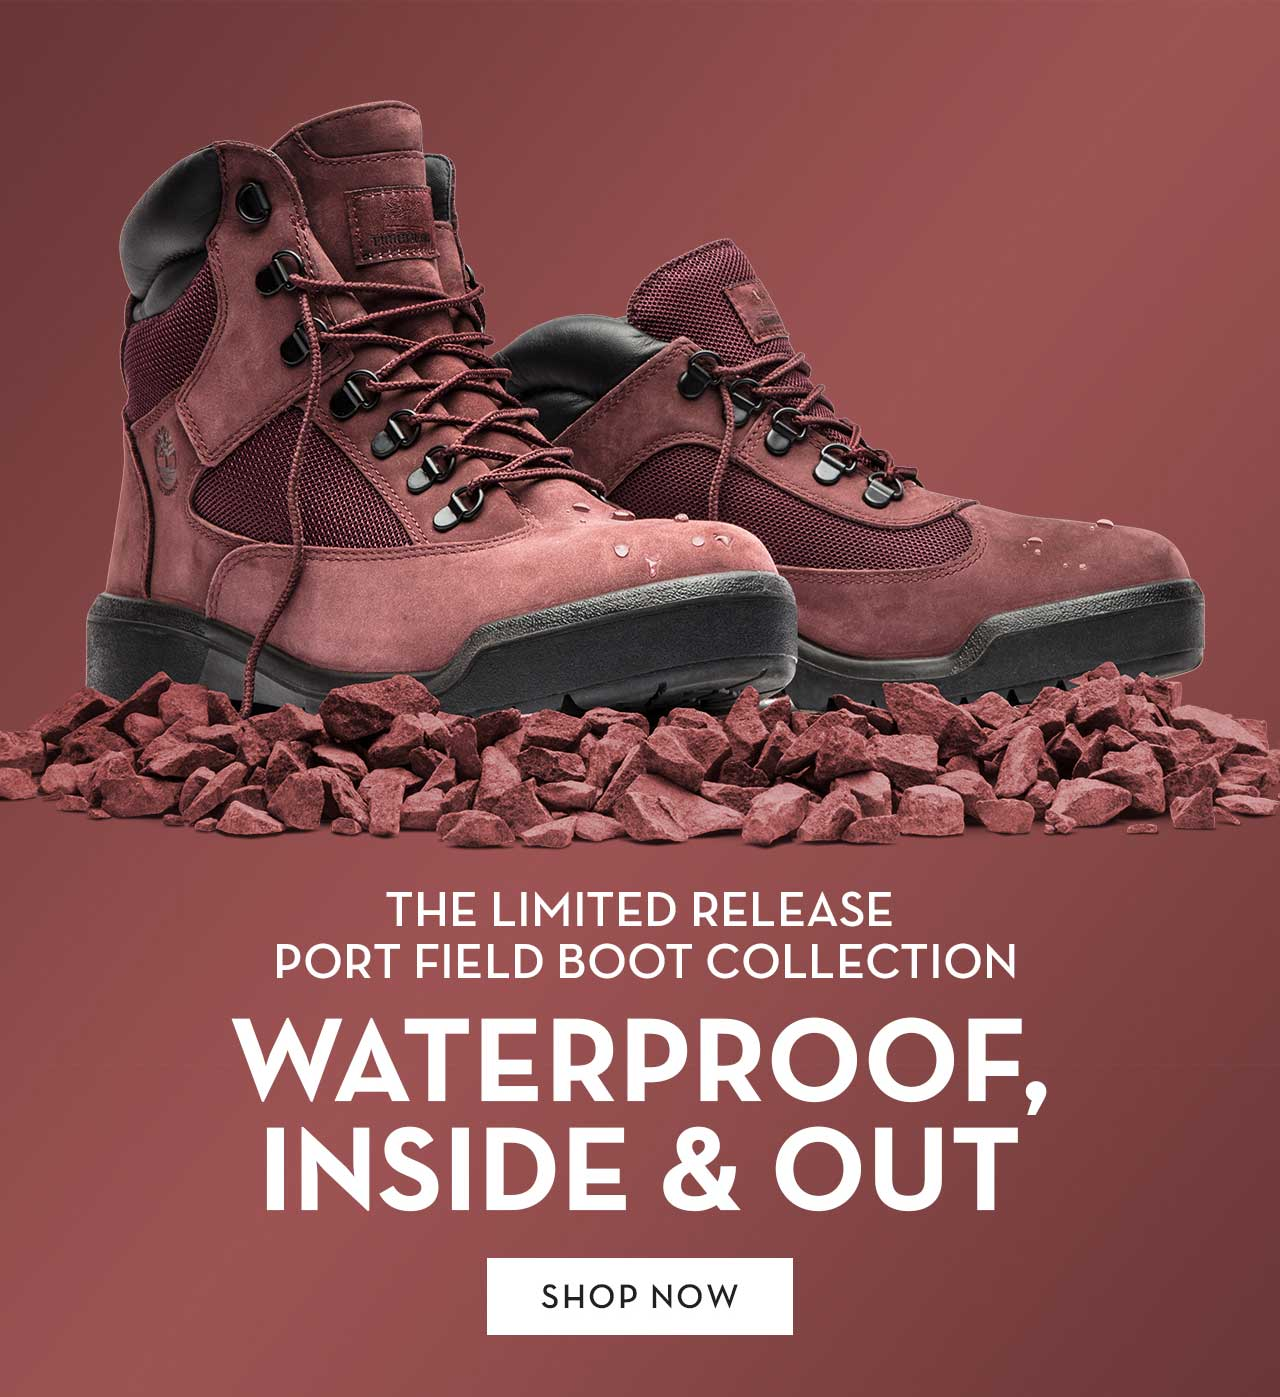 The Limited Release Port Field Boot Collection Waterproof, Inside & Out Shop Now